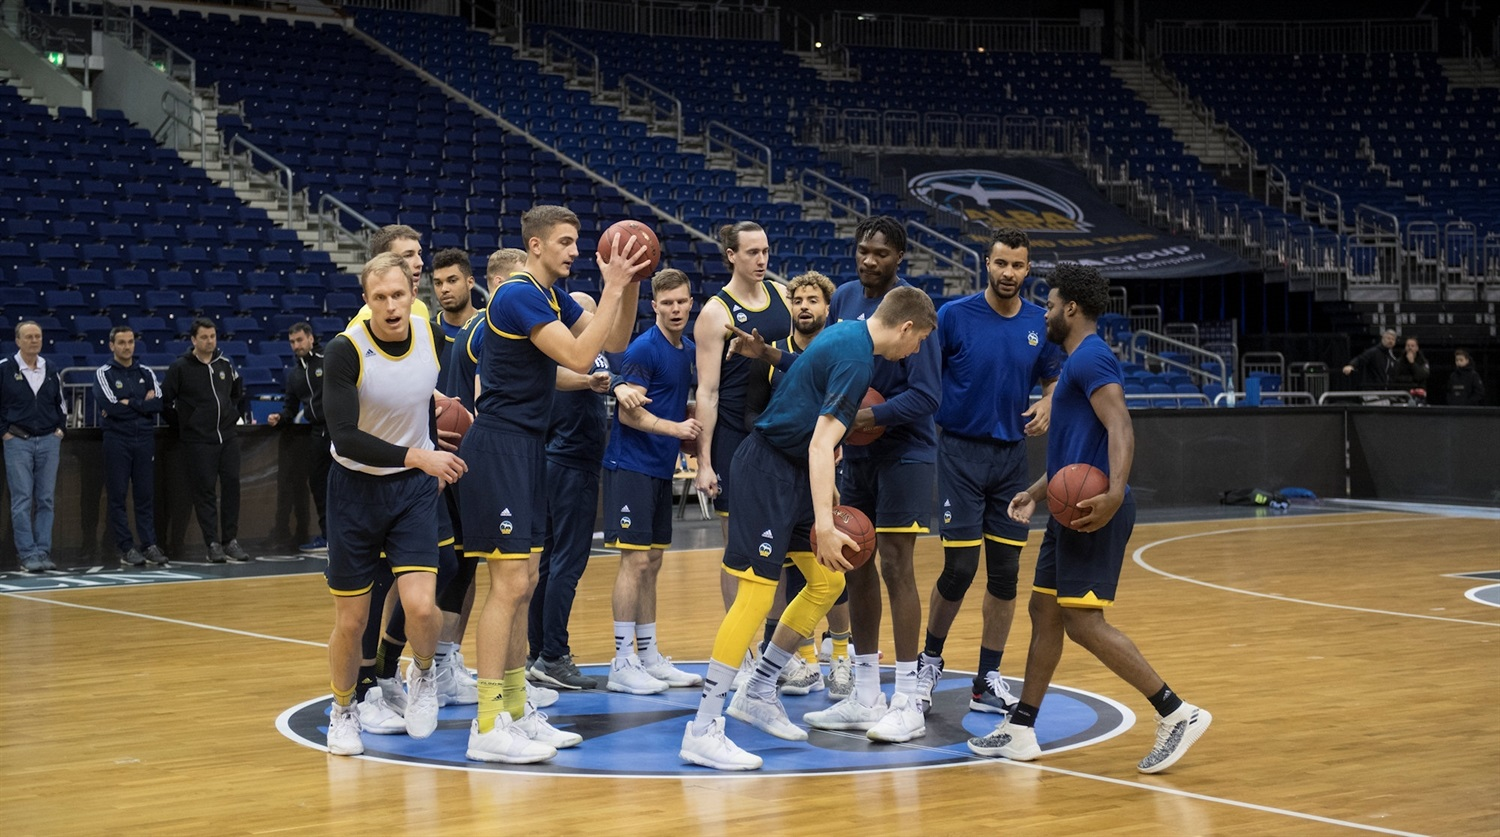 ALBA Berlin practices - Finals Game 2 - EC18